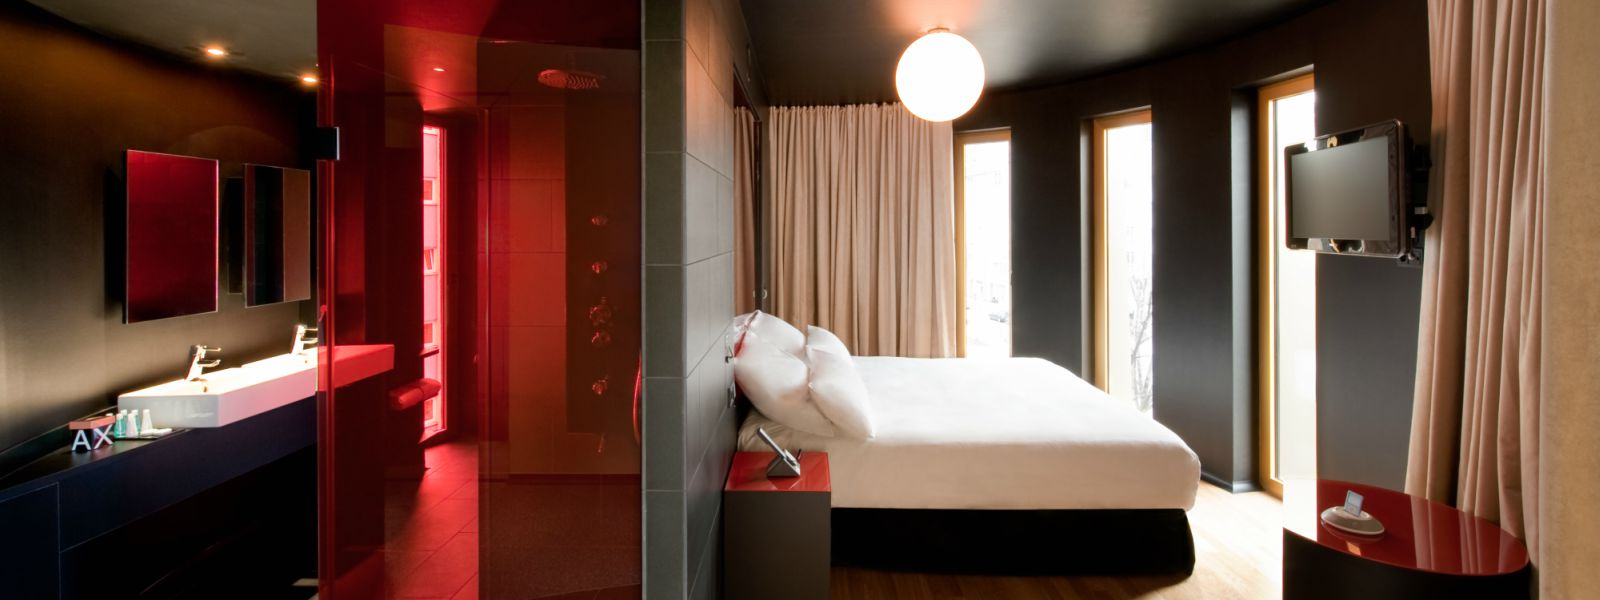 gay leather hotels berlin